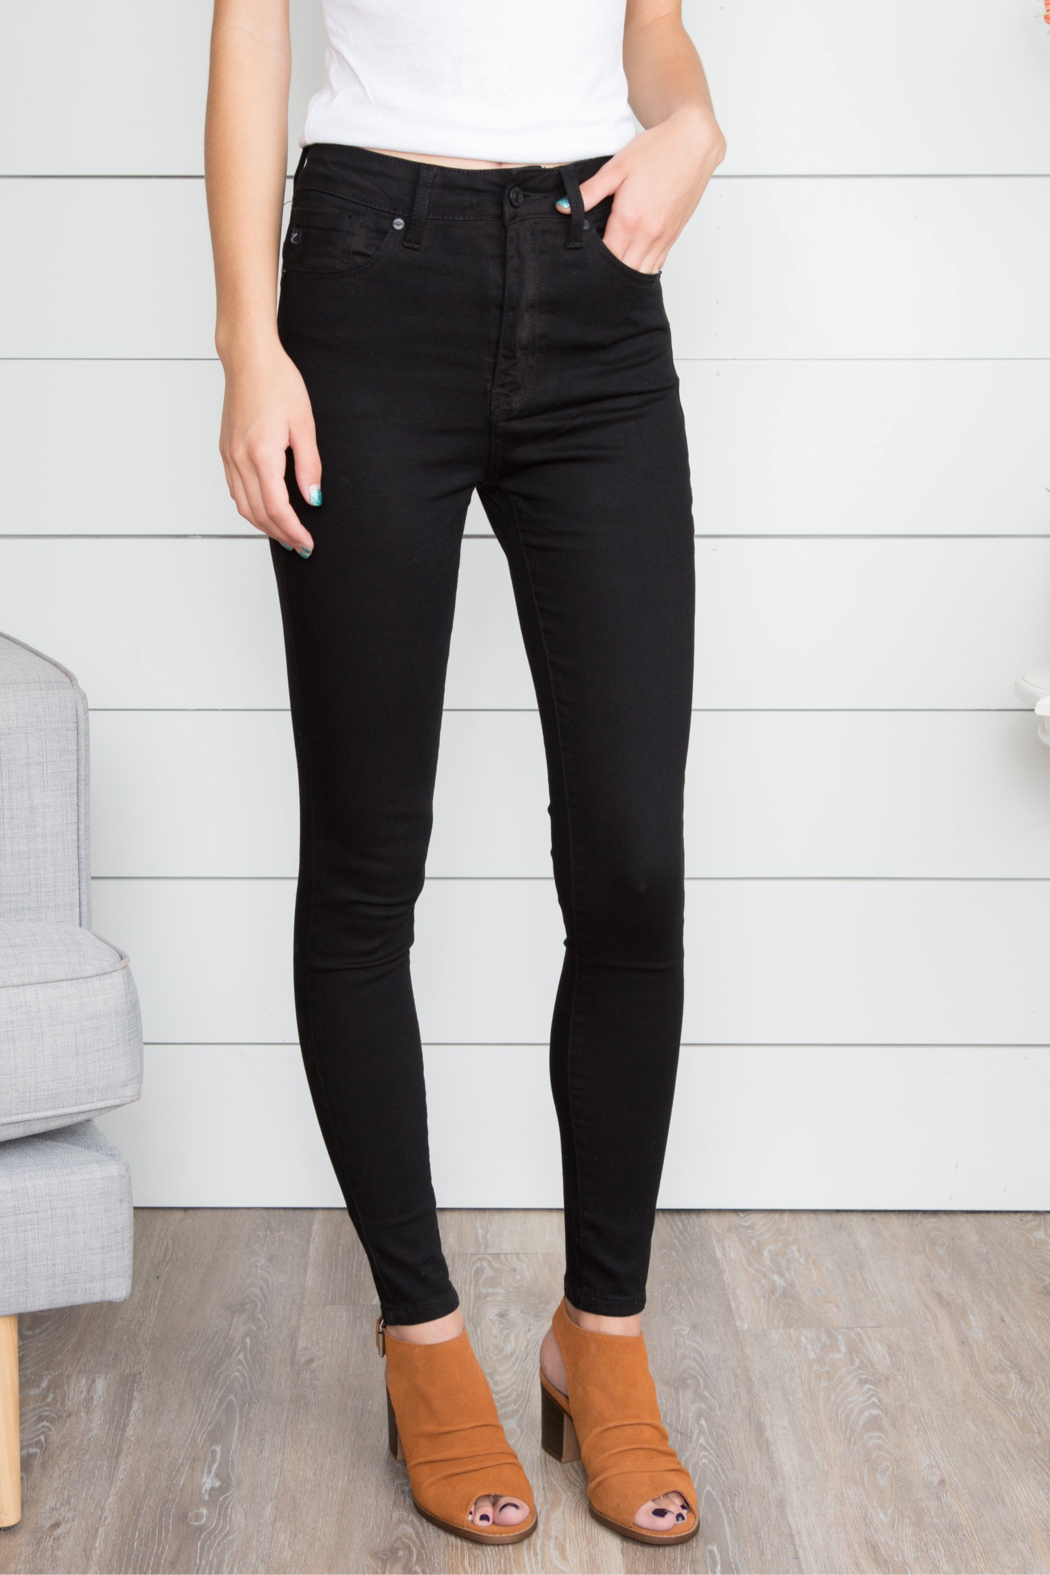 Hidden Jeans Taylor High Rise Skinny -BLK - Main Image